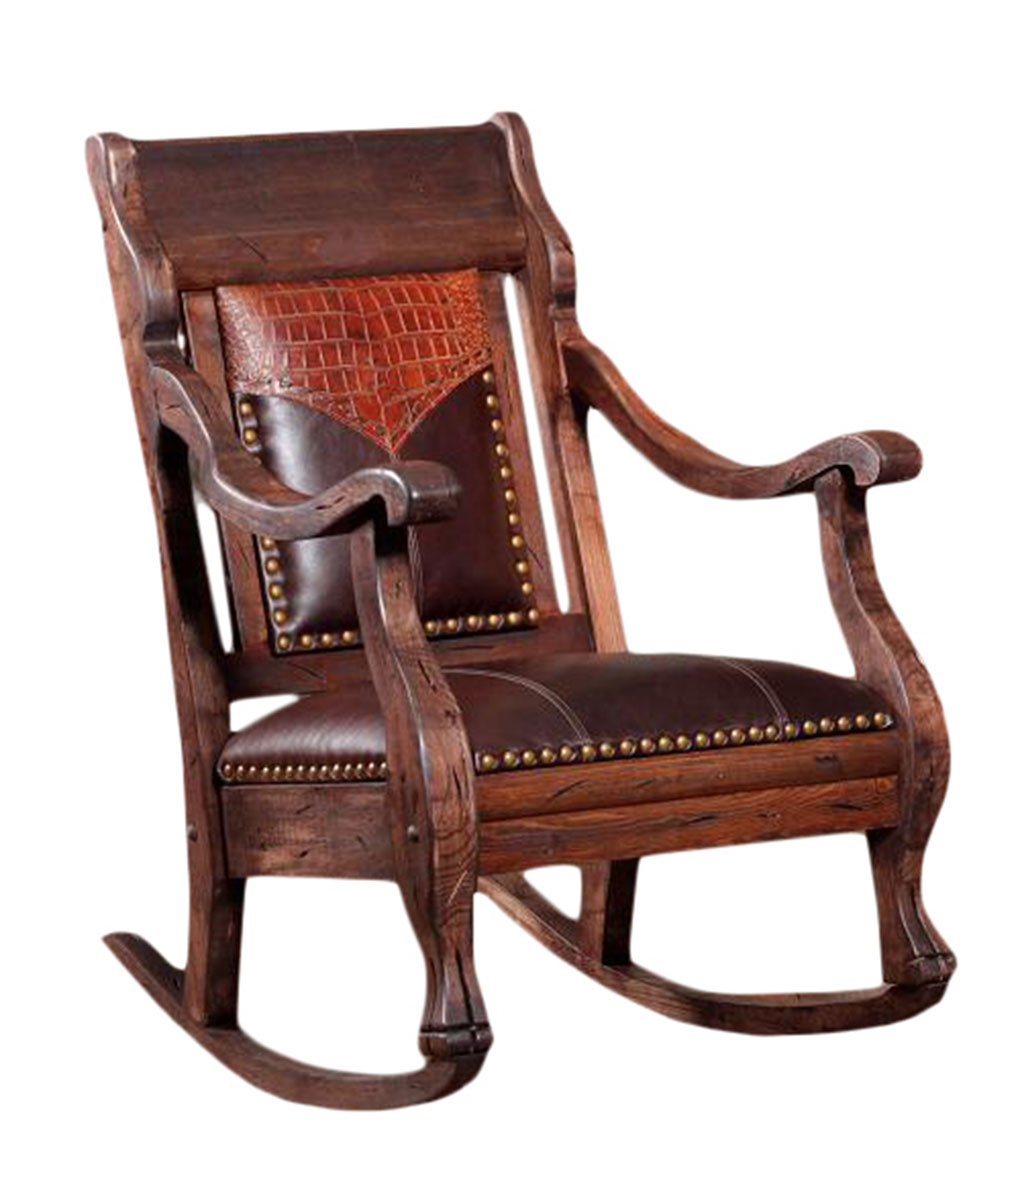 Leather Rocking Chair Vintage Rocker